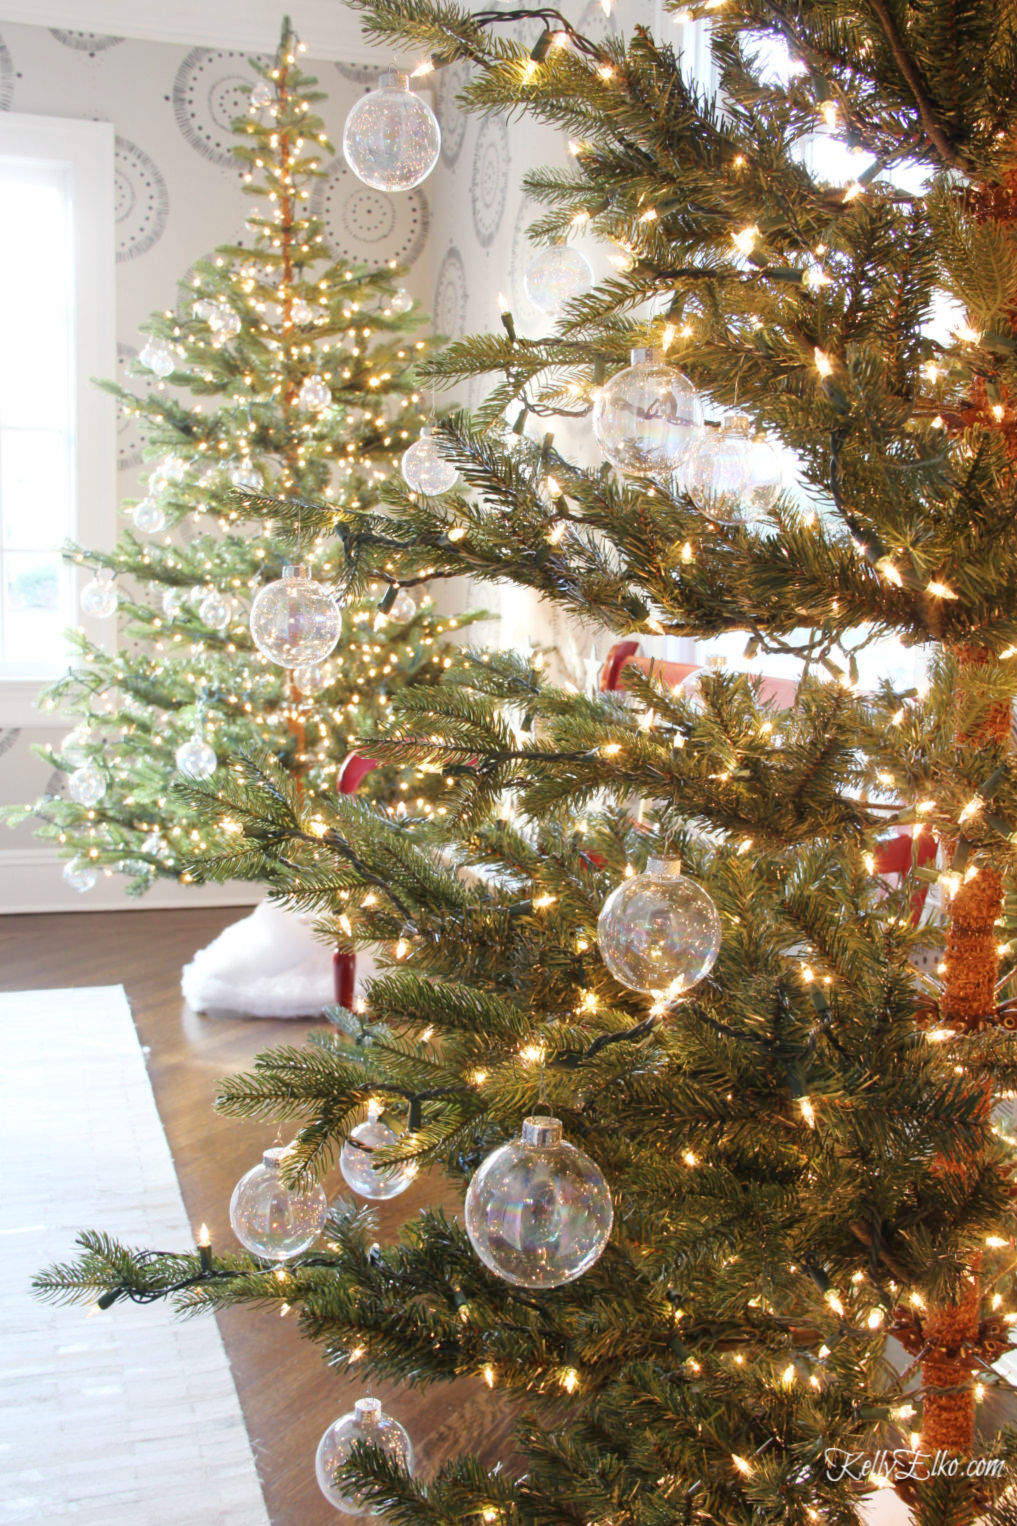 Beautiful Christmas Home Tour featuring a pair of sparse Christmas trees covered in clear glass ornaments kellyelko.com #christmas #christmasdecor #christmasdecorating #christmashome #christmastour #diychristmas #christmasideas #christmasmantel #christmastree #christmasornaments #vintagechristmas #farmhousechristmas #colorfulchristmas #creativechristmas #kellyelko